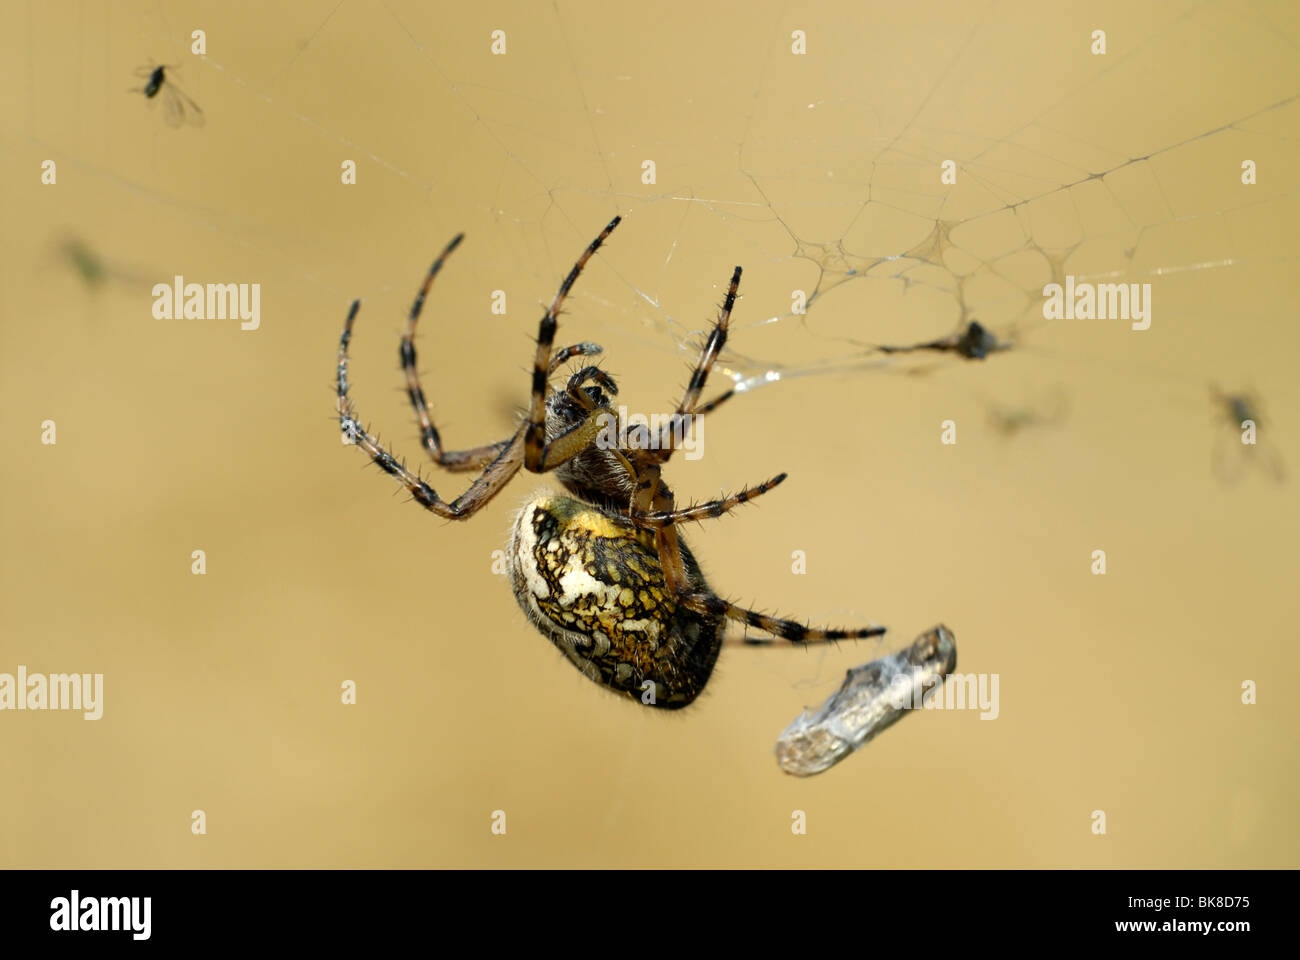 Oak Spider (Aculepeira ceropegia) in the midst of its prey - Stock Image